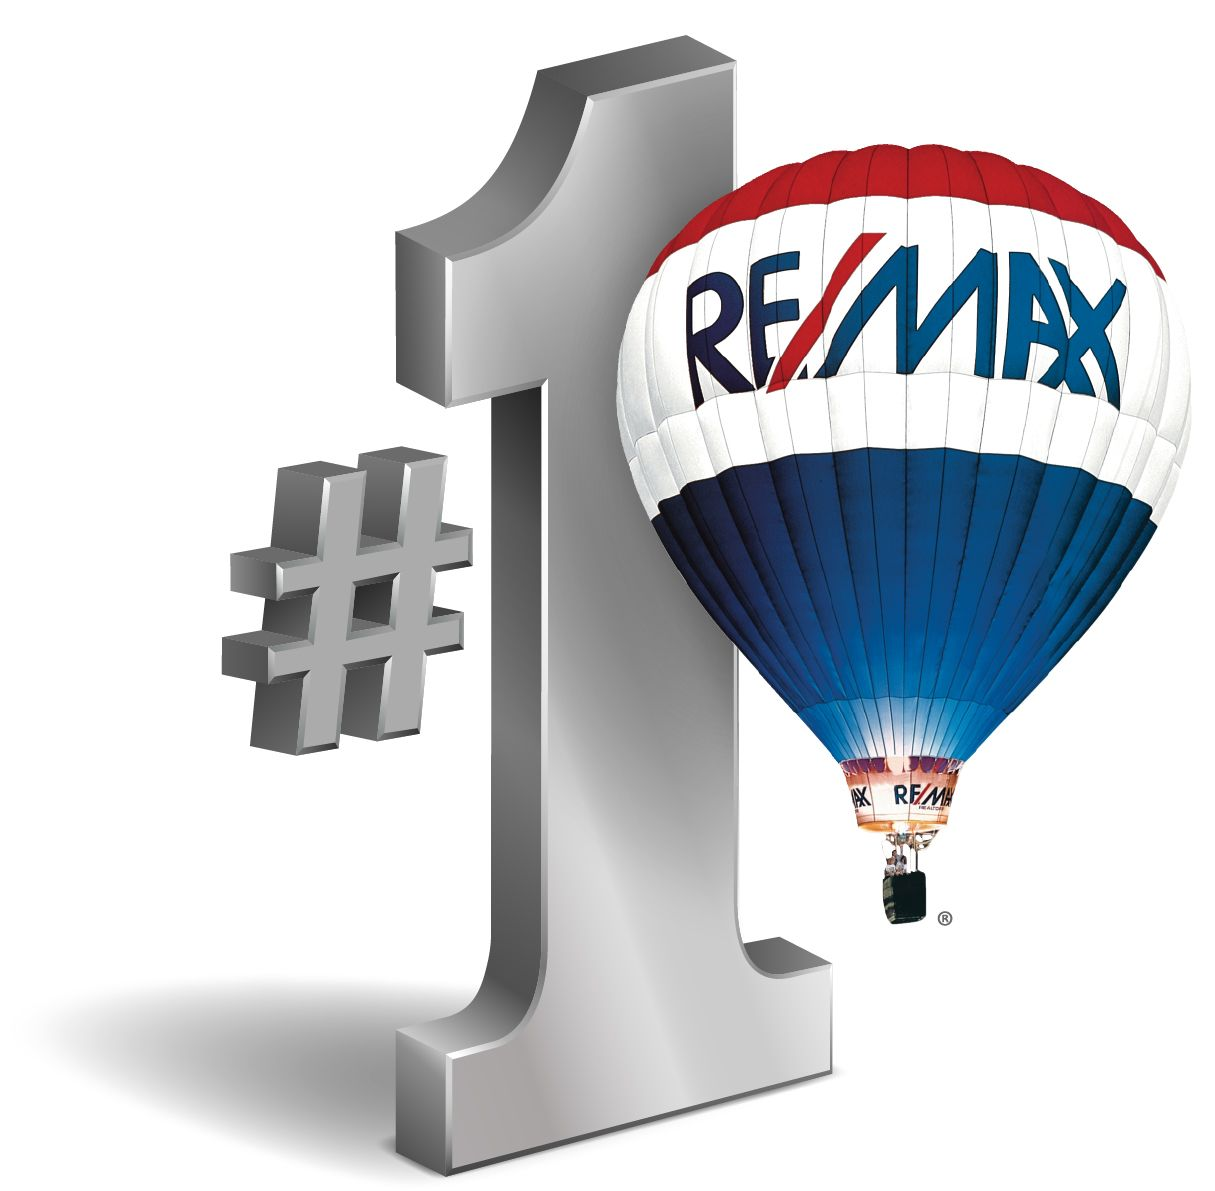 RE/MAX is #1